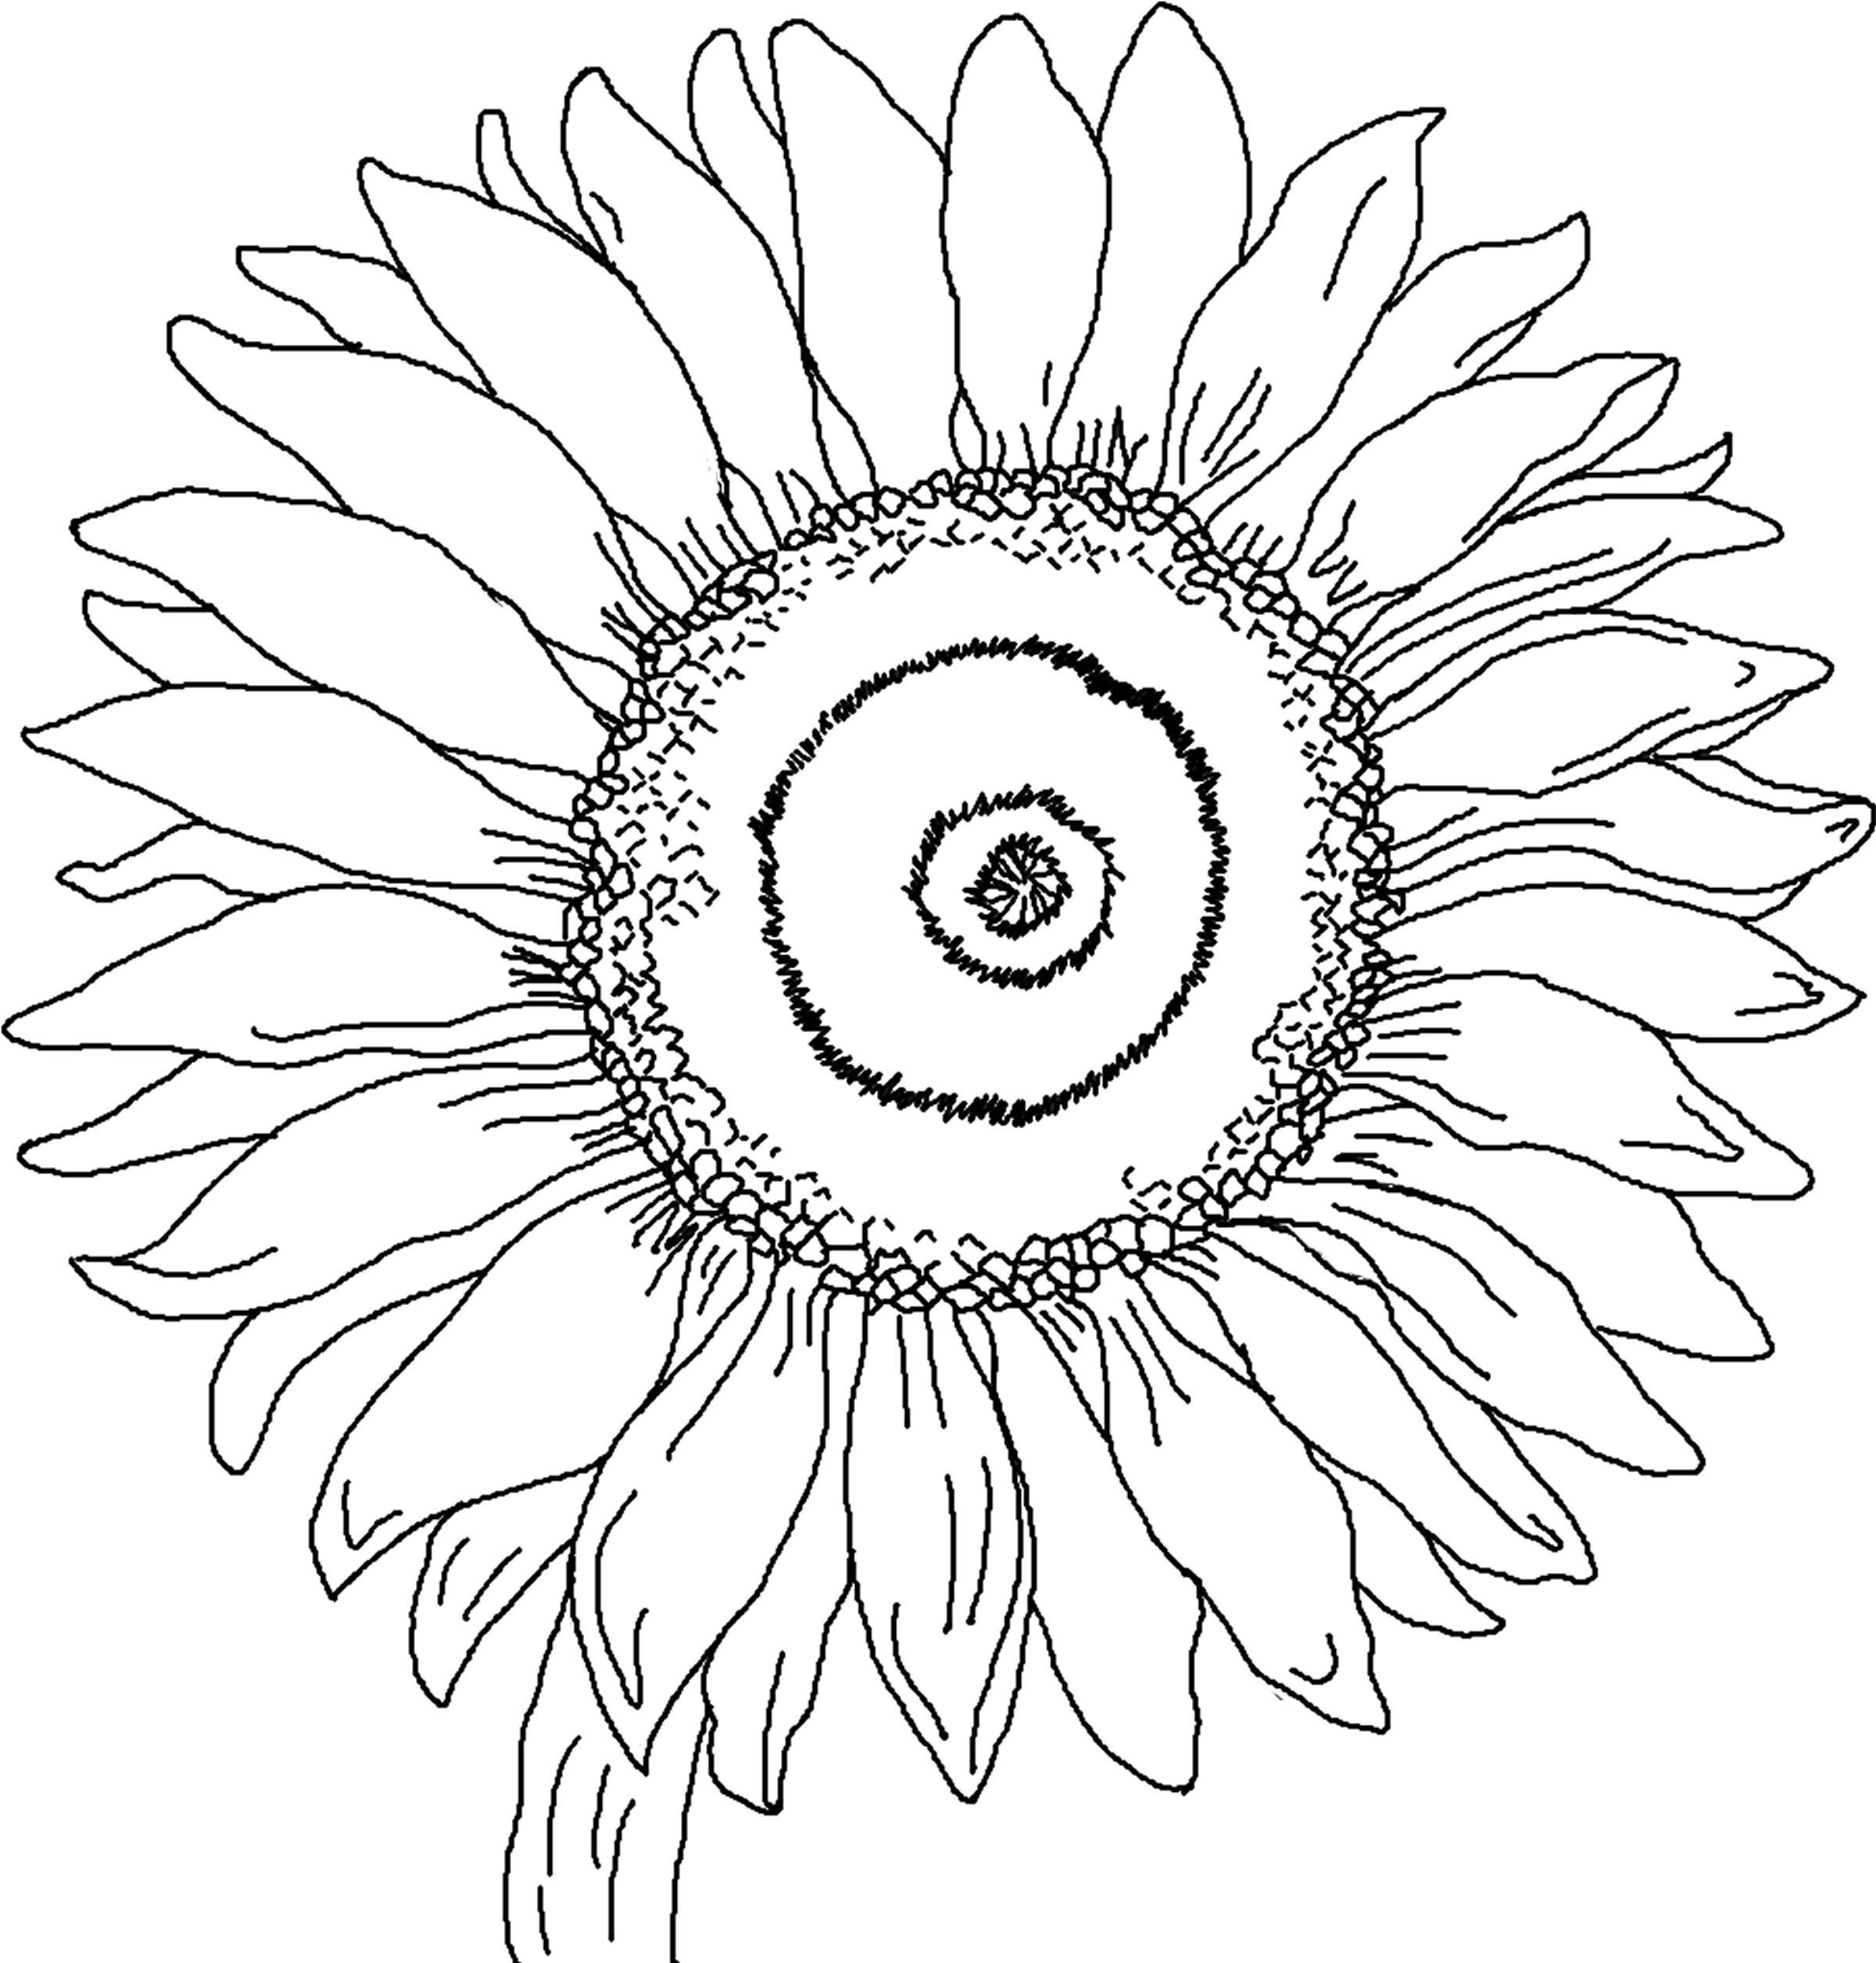 Free Printable Sunflower Coloring Pages For Kids | Auction Art - Free Printable Sunflower Template